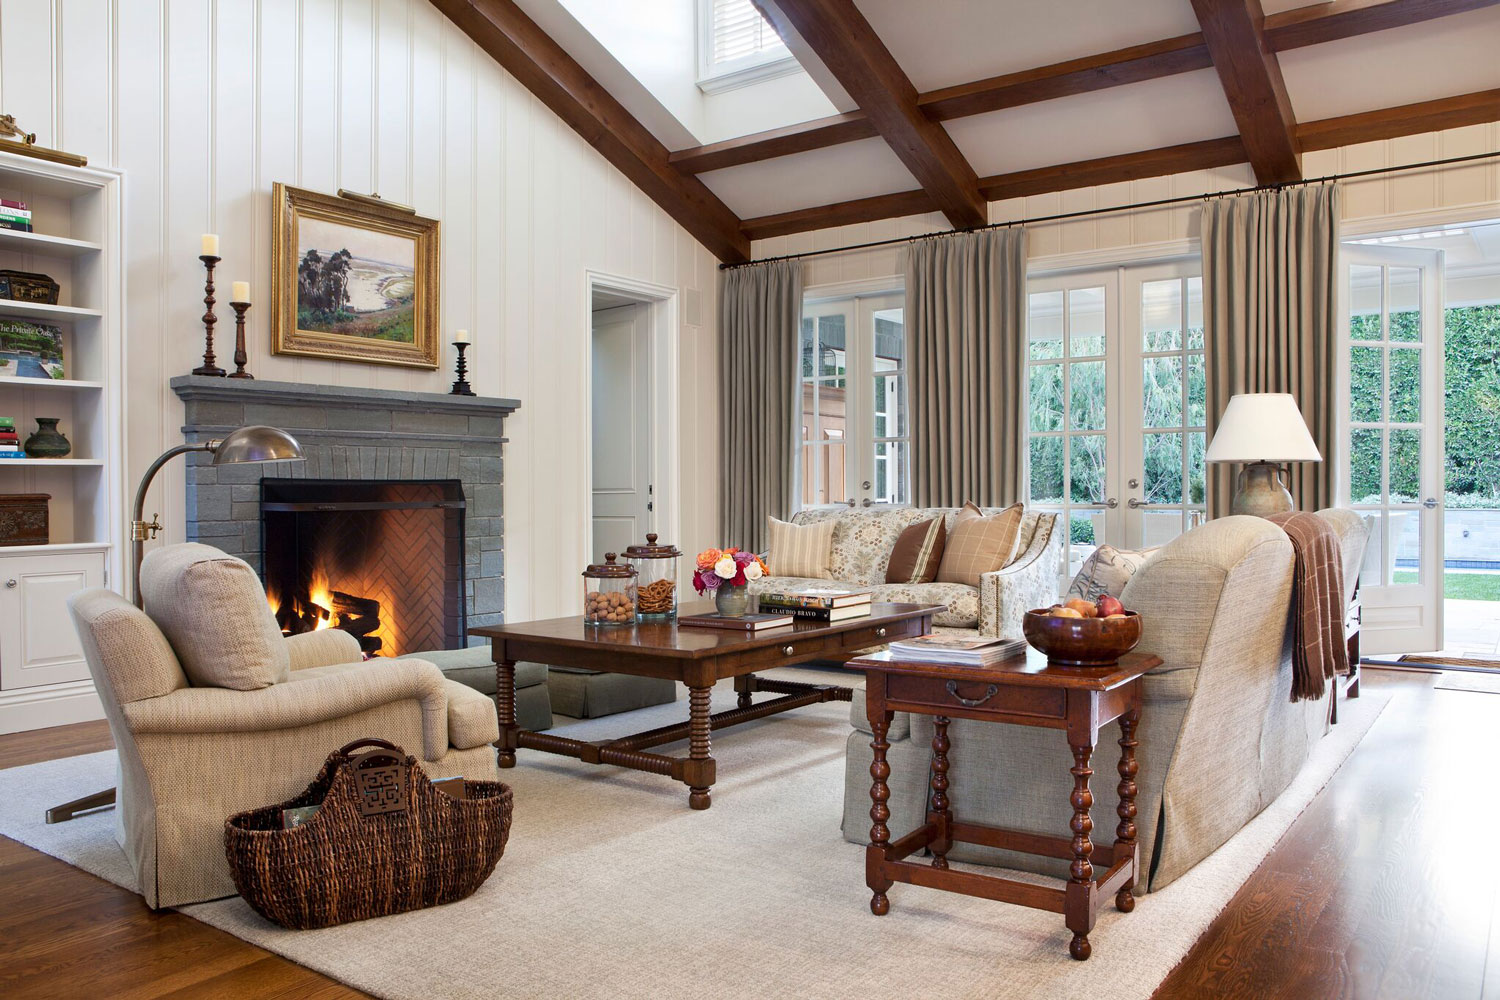 6-ward-jewell-fireplace-beam-ceiling-living-room-brentwood-1.jpg